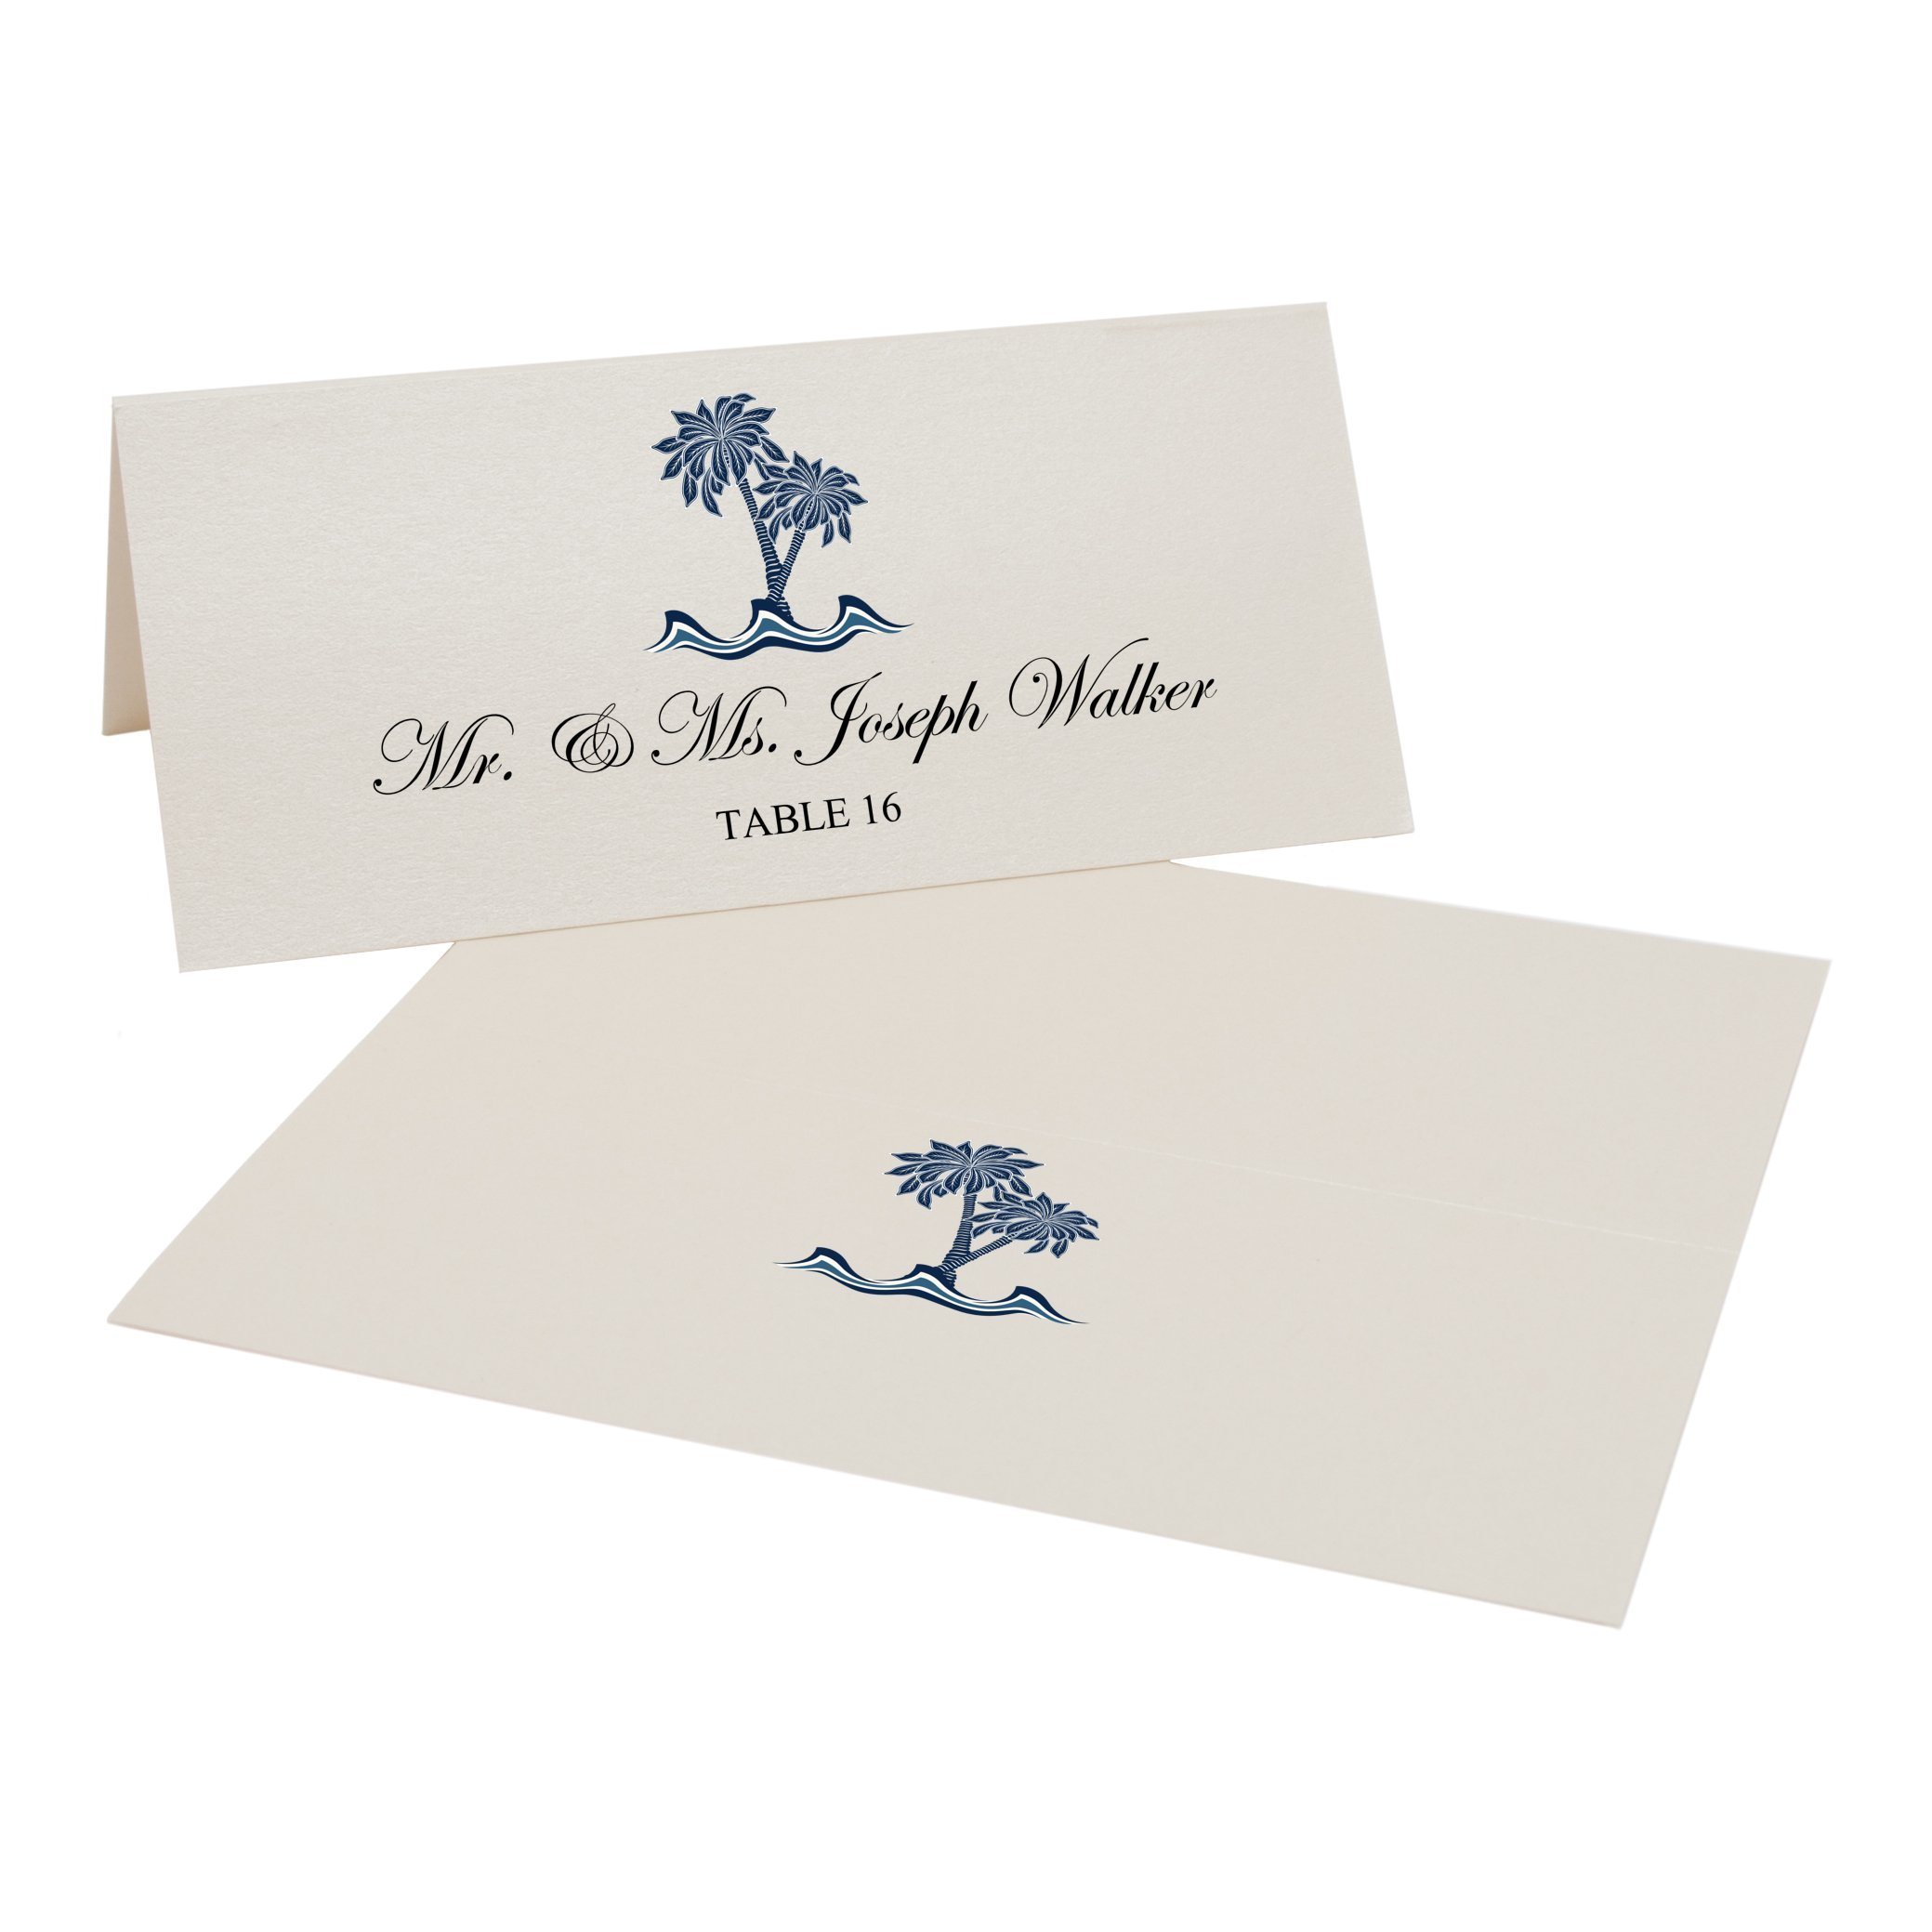 Paisley Palm Tree Easy Print Place Cards, Champagne, Set of 325 (82 Sheets) by Documents and Designs